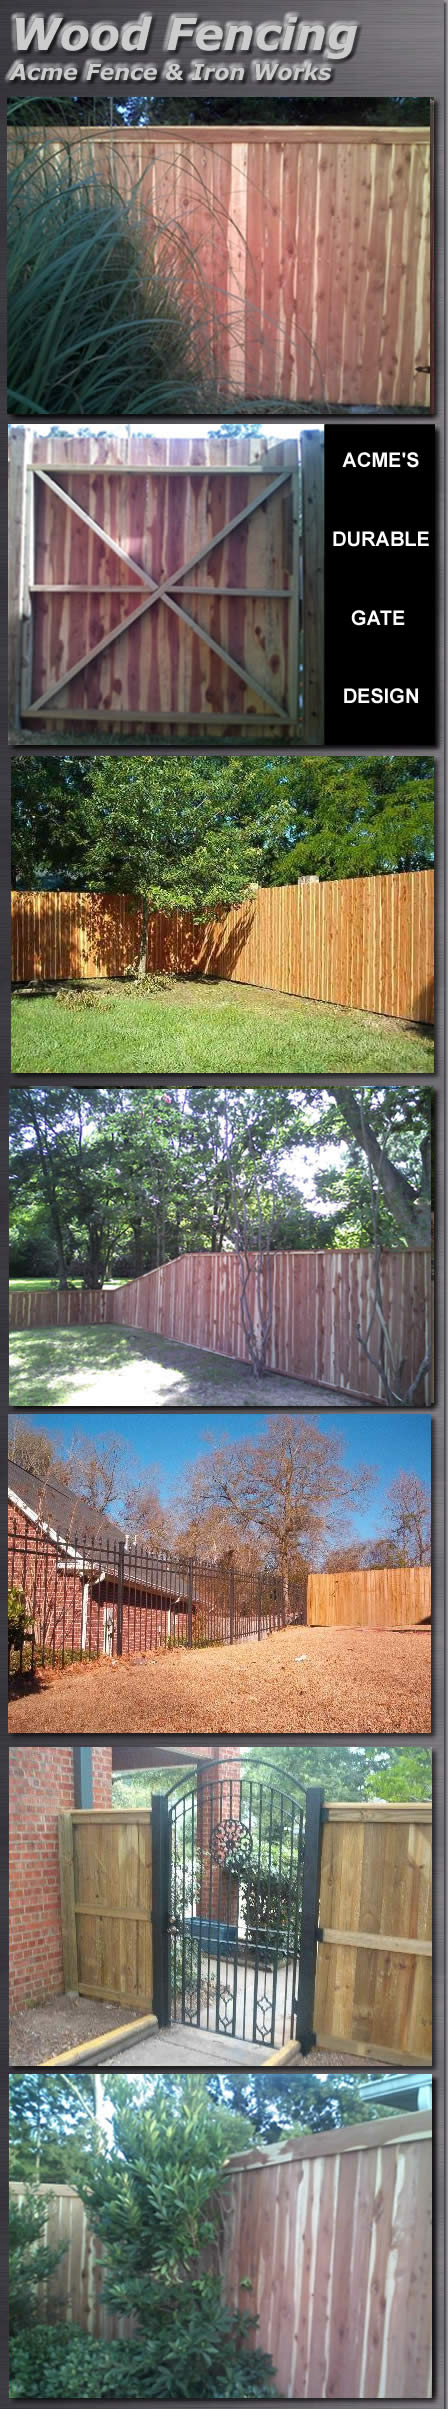 woodfencing